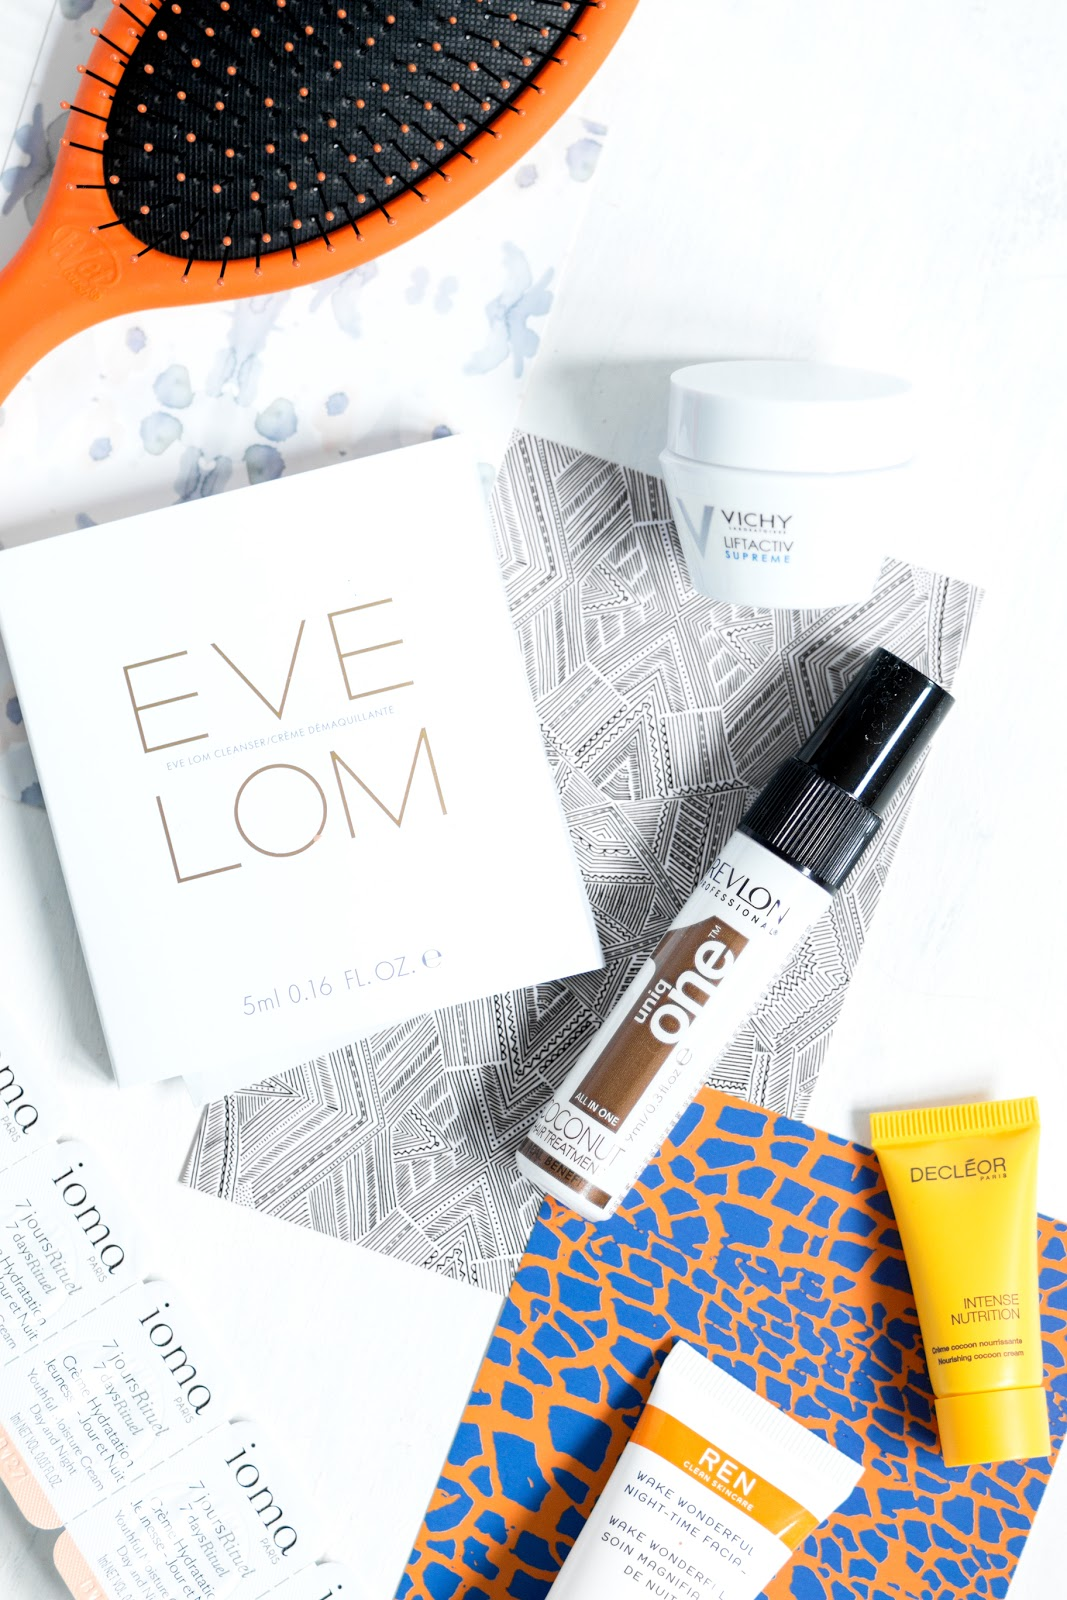 WHAT'S IN MAY'S BEAUTY BOX?